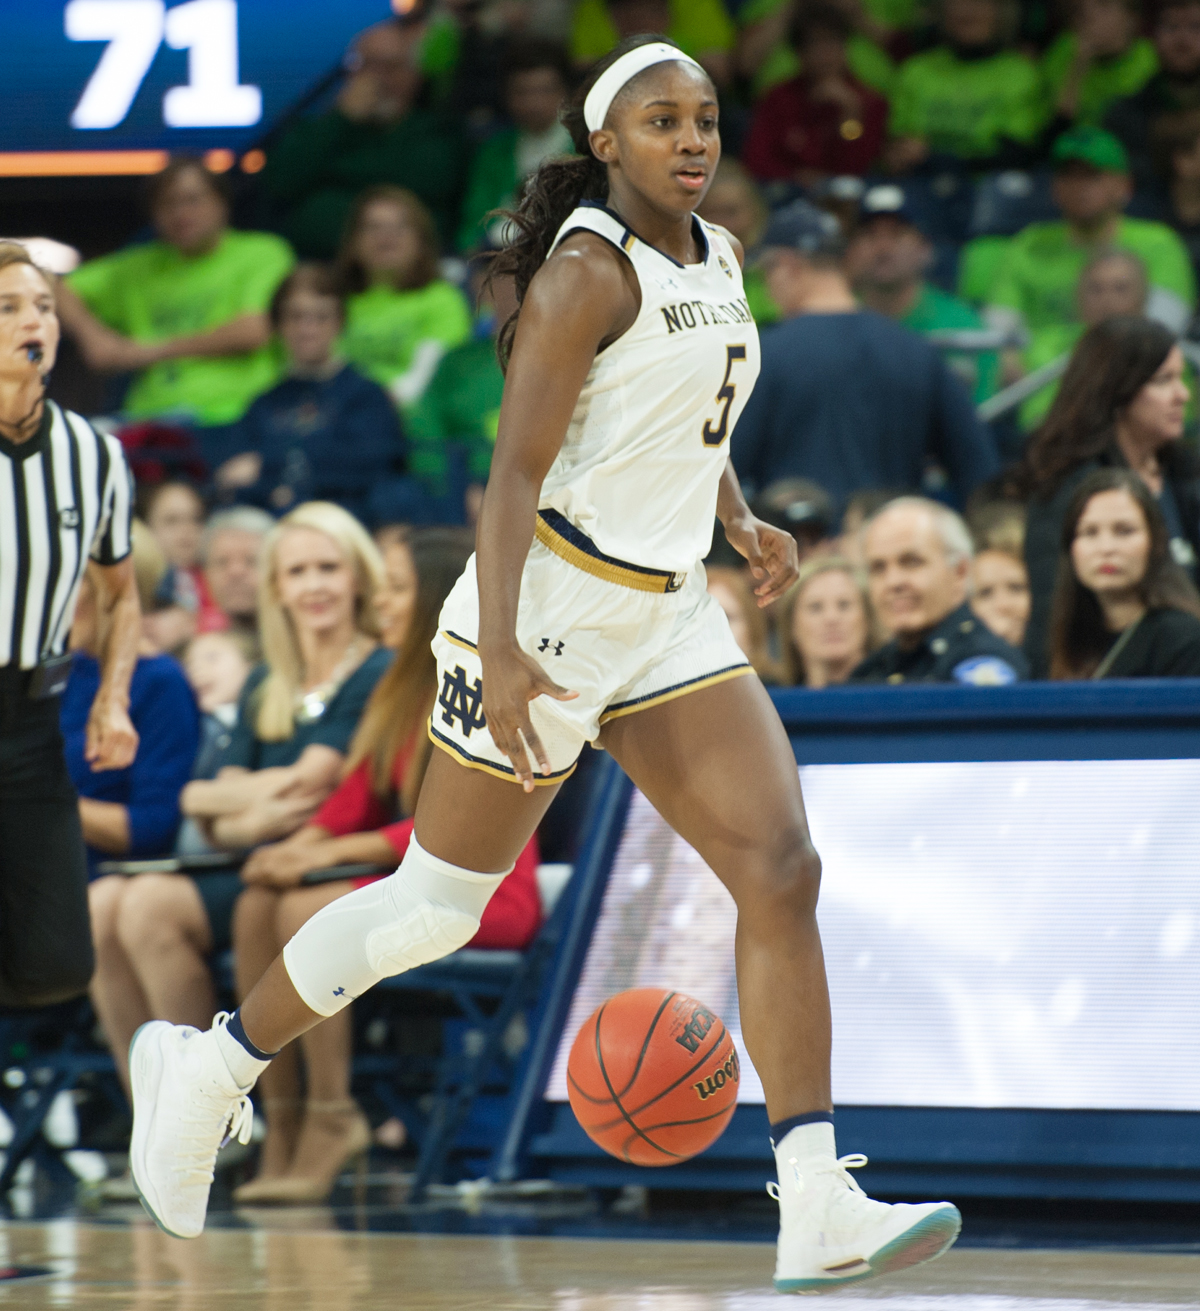 Stunner as UConn women blast No. 1 Notre Dame by 18